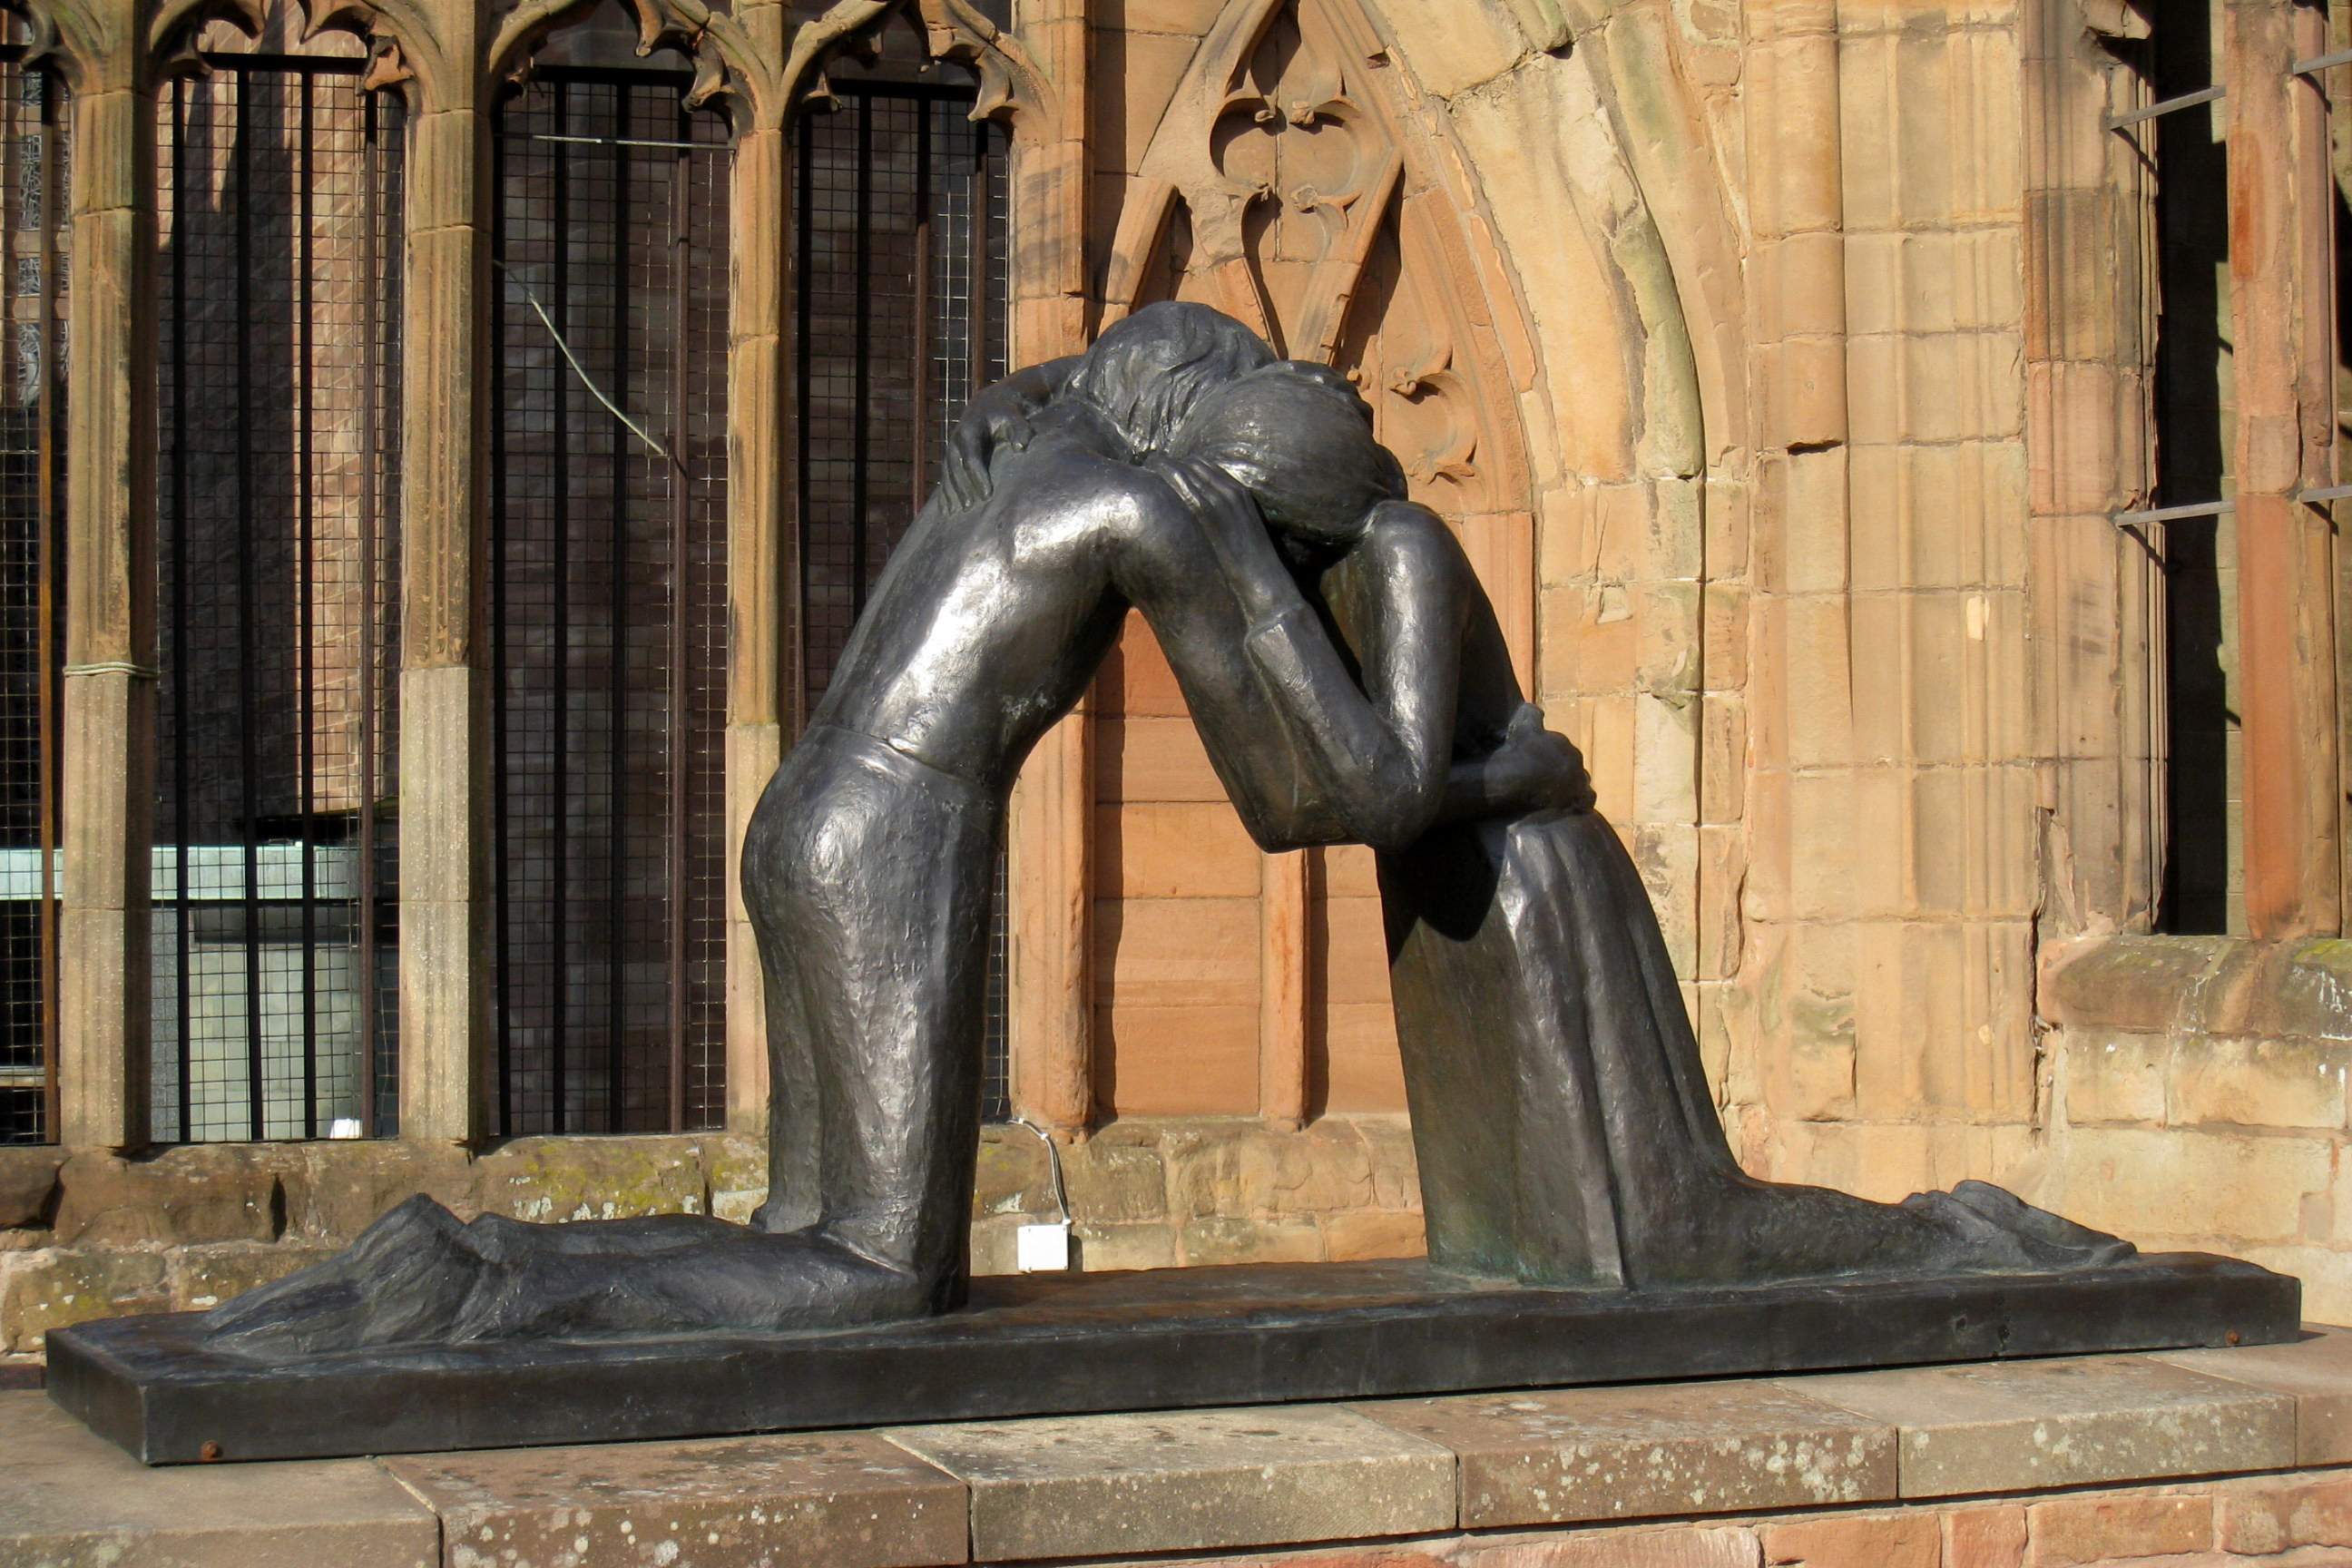 The sculpture Reconciliation by Vasconcellos.